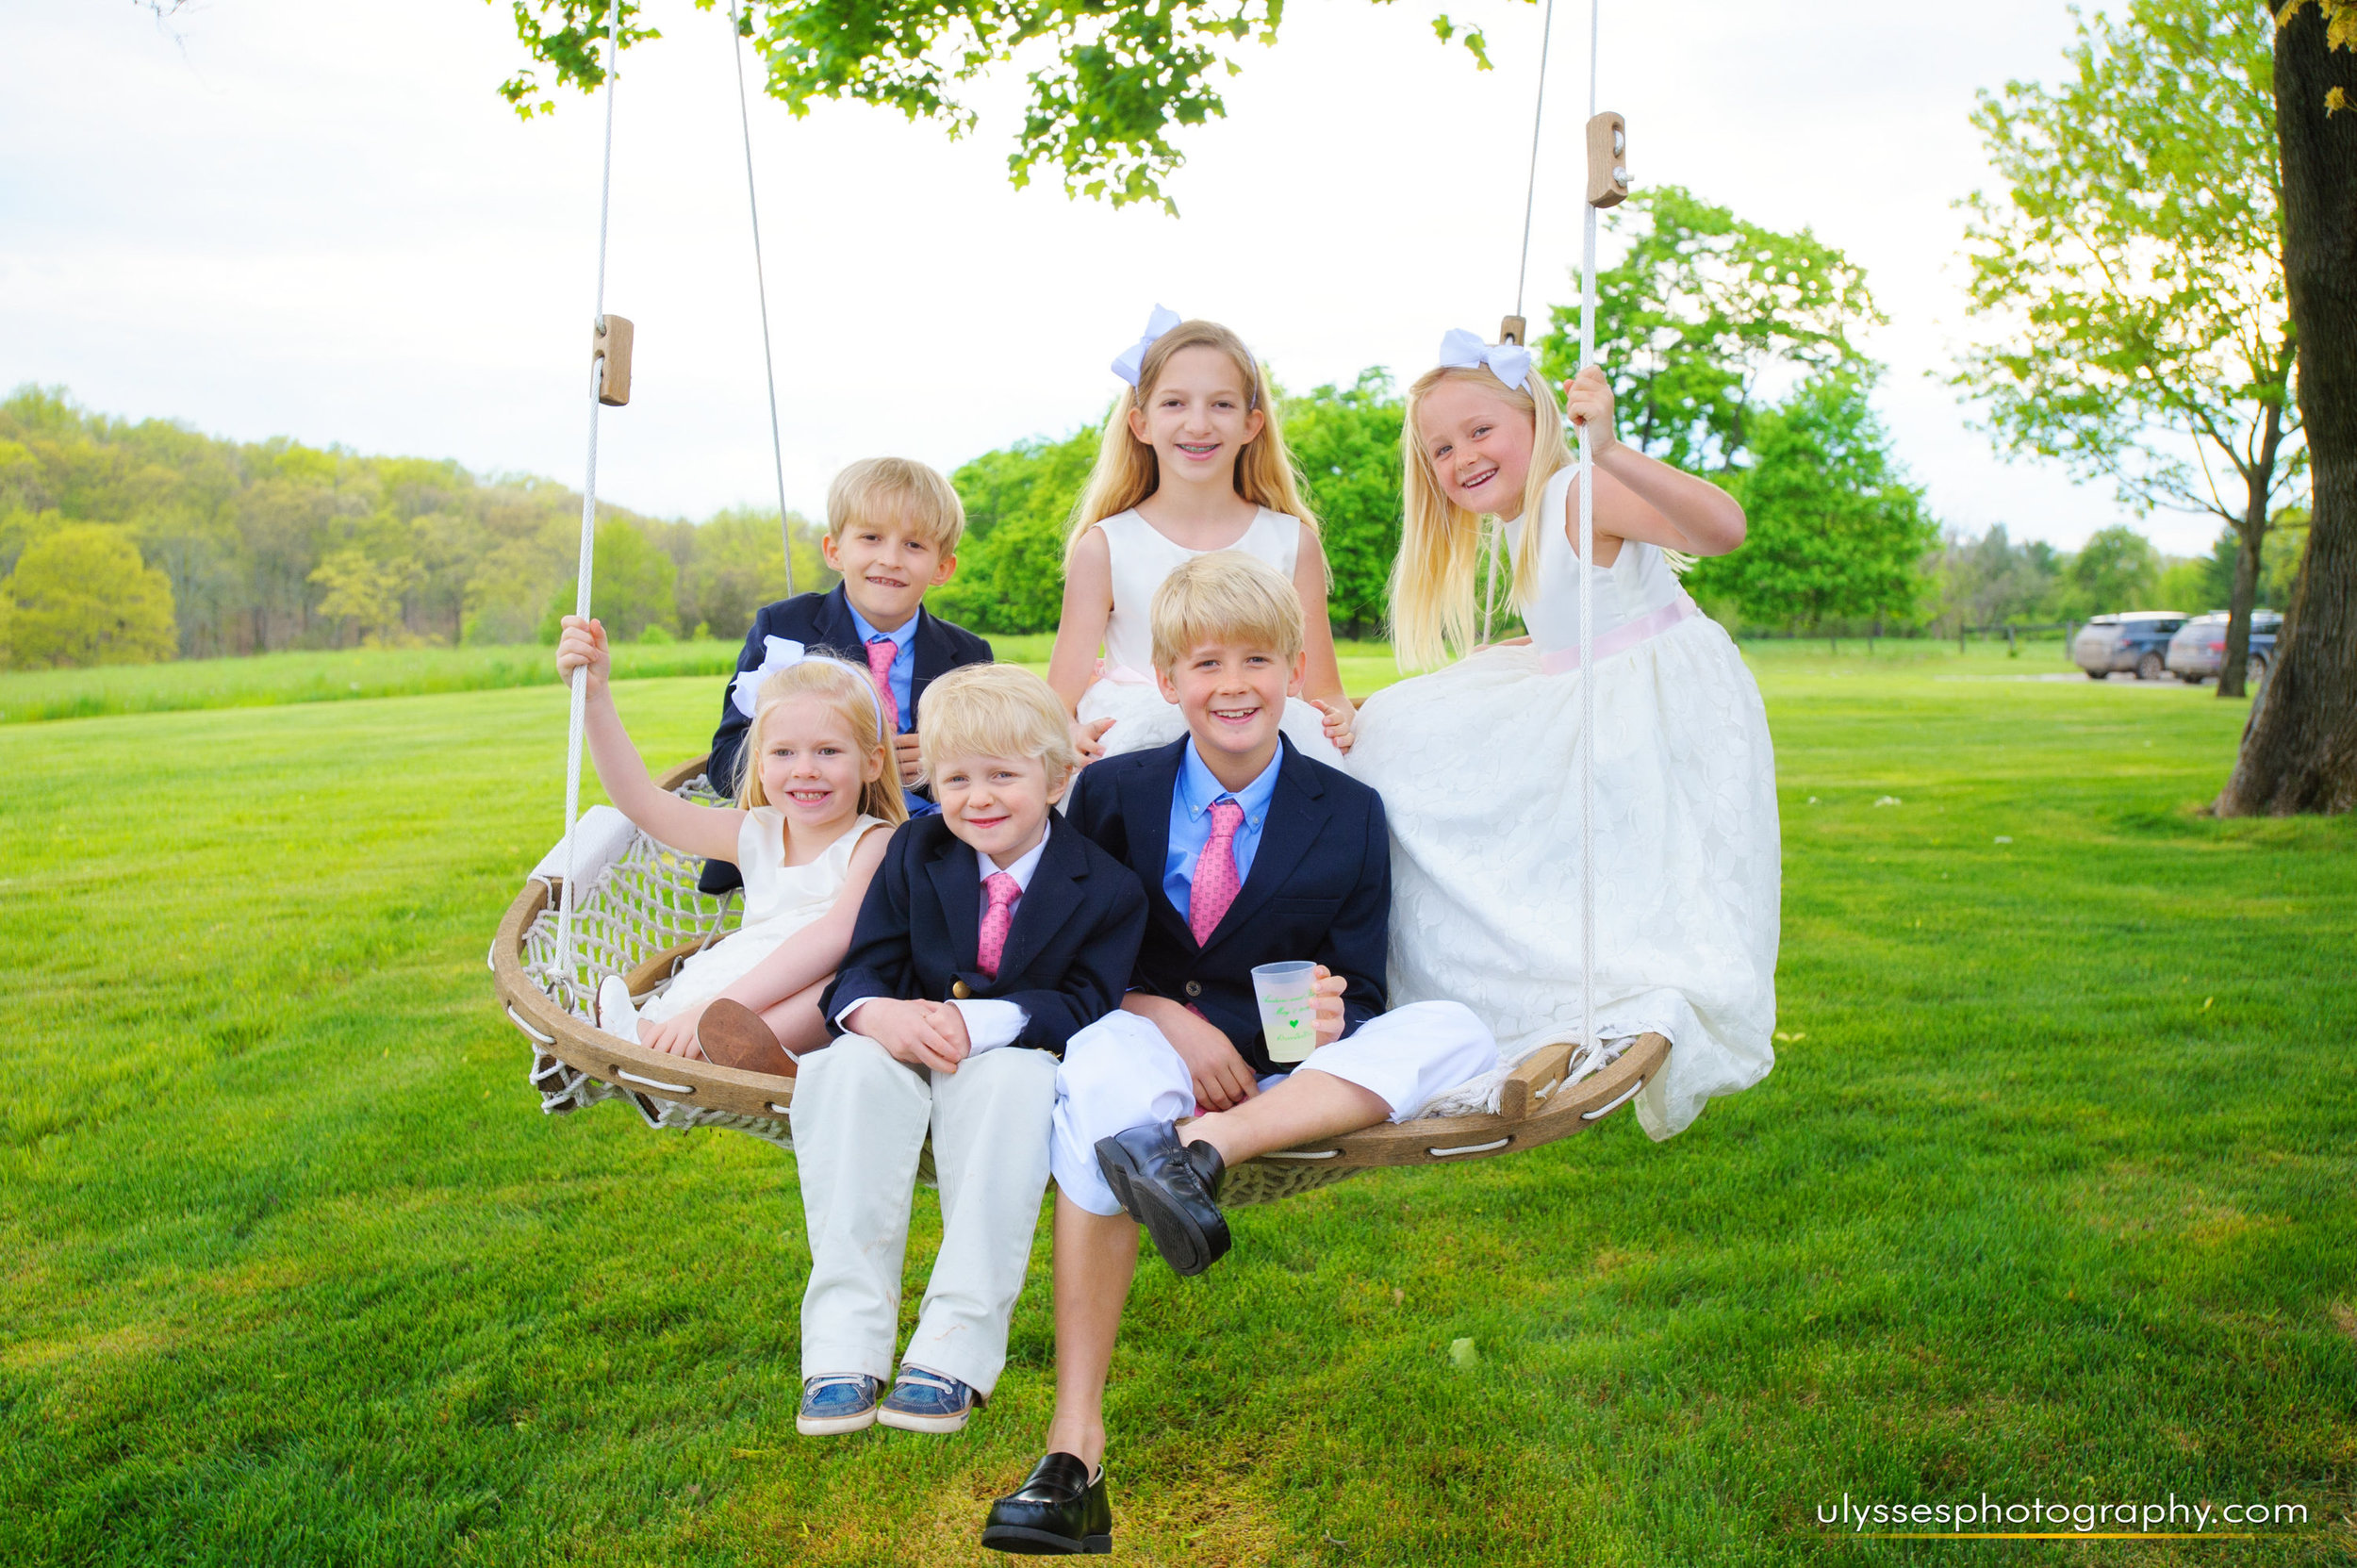 15 At Home Wedding Cousins Wedding Party Swing NJ Wedding Planner.jpg